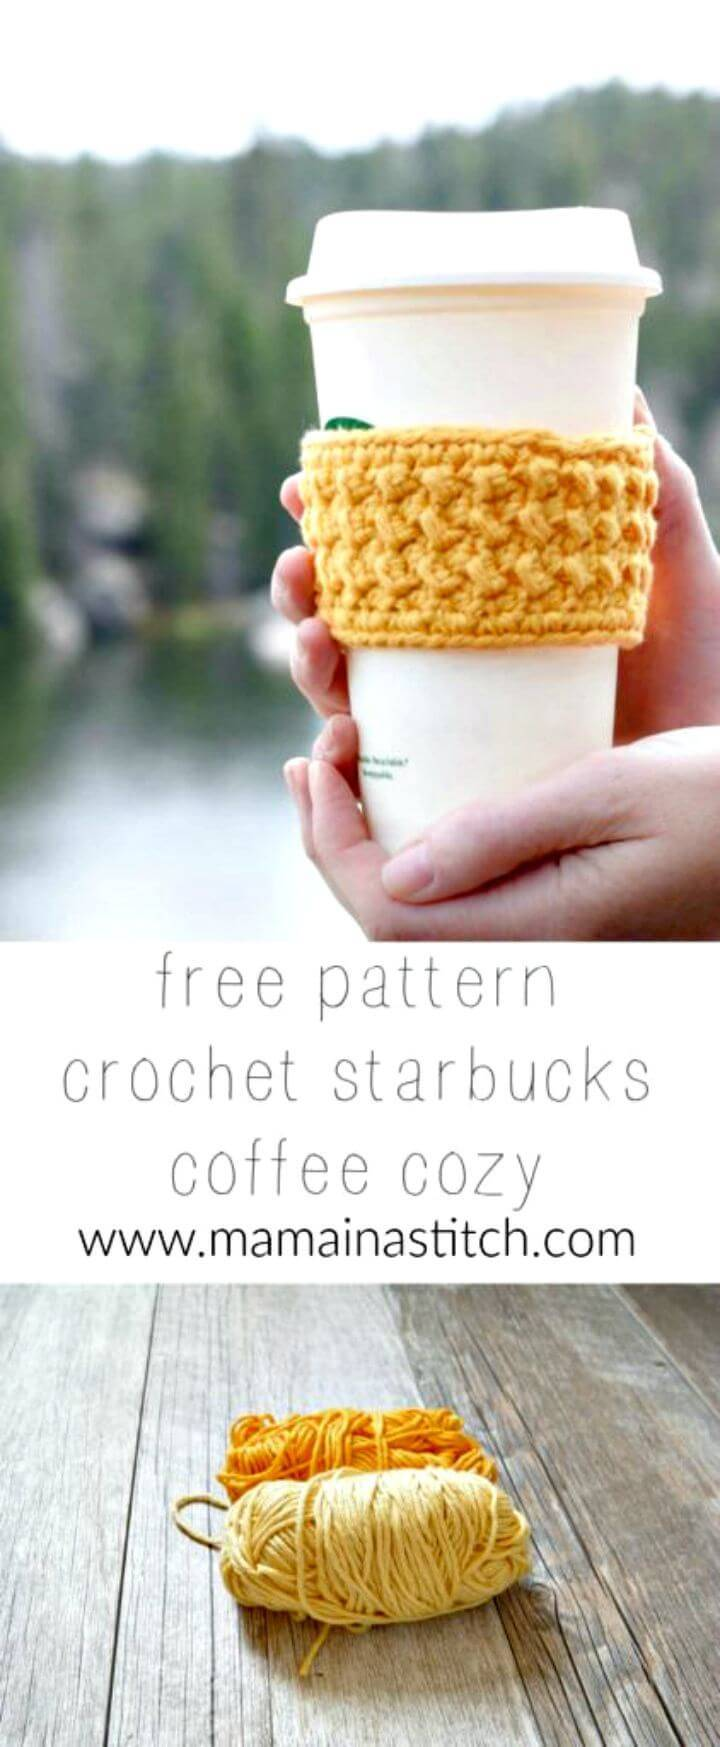 How To Free Crochet Happiest Starbucks Coffee Cup Cozy Pattern